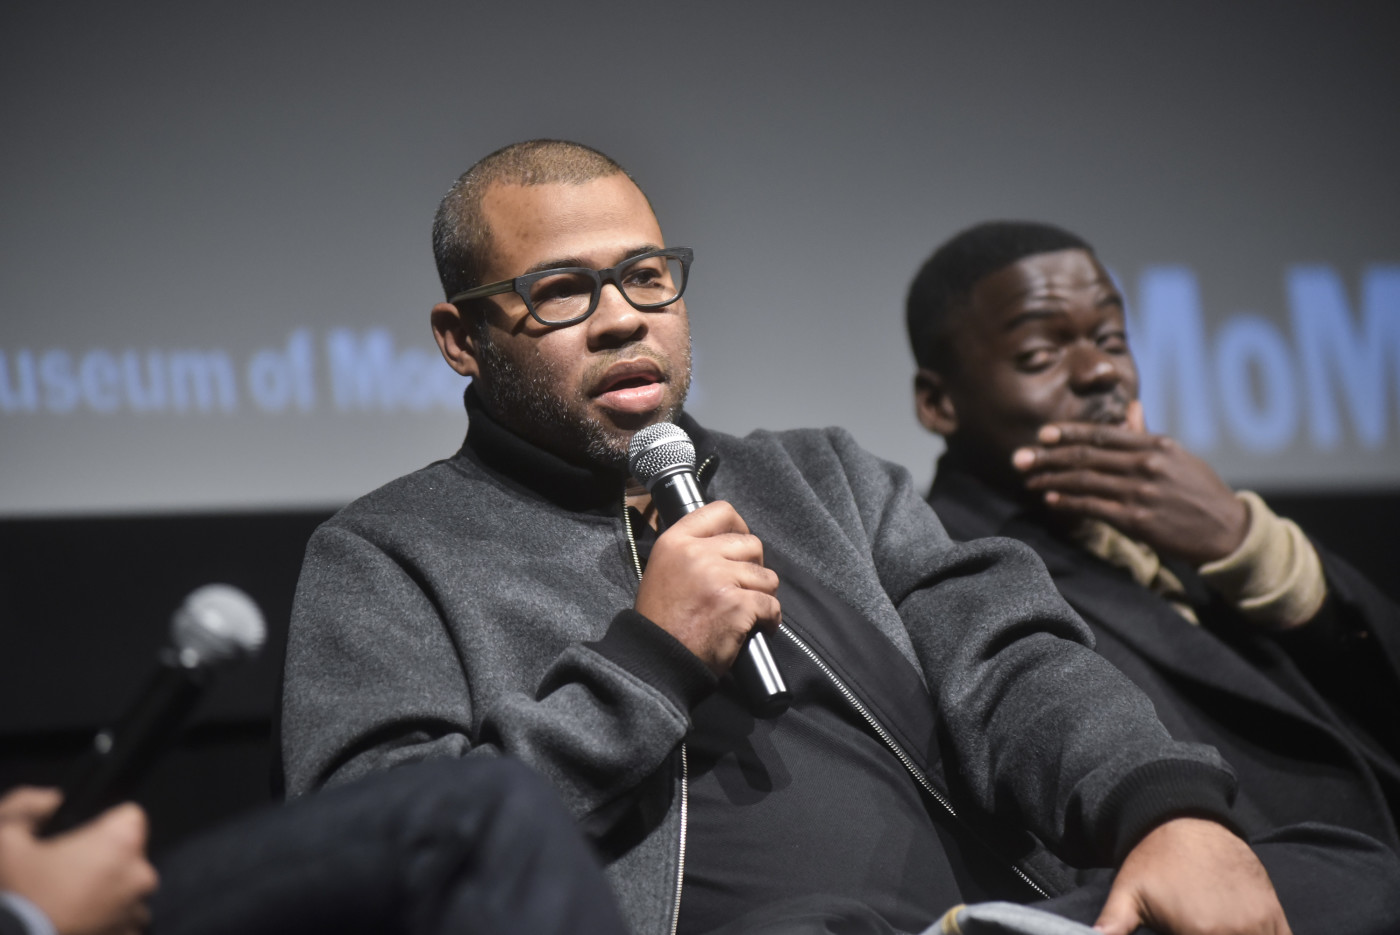 Jordan Peele attends the MoMA's Contenders Screening of 'Get Out'